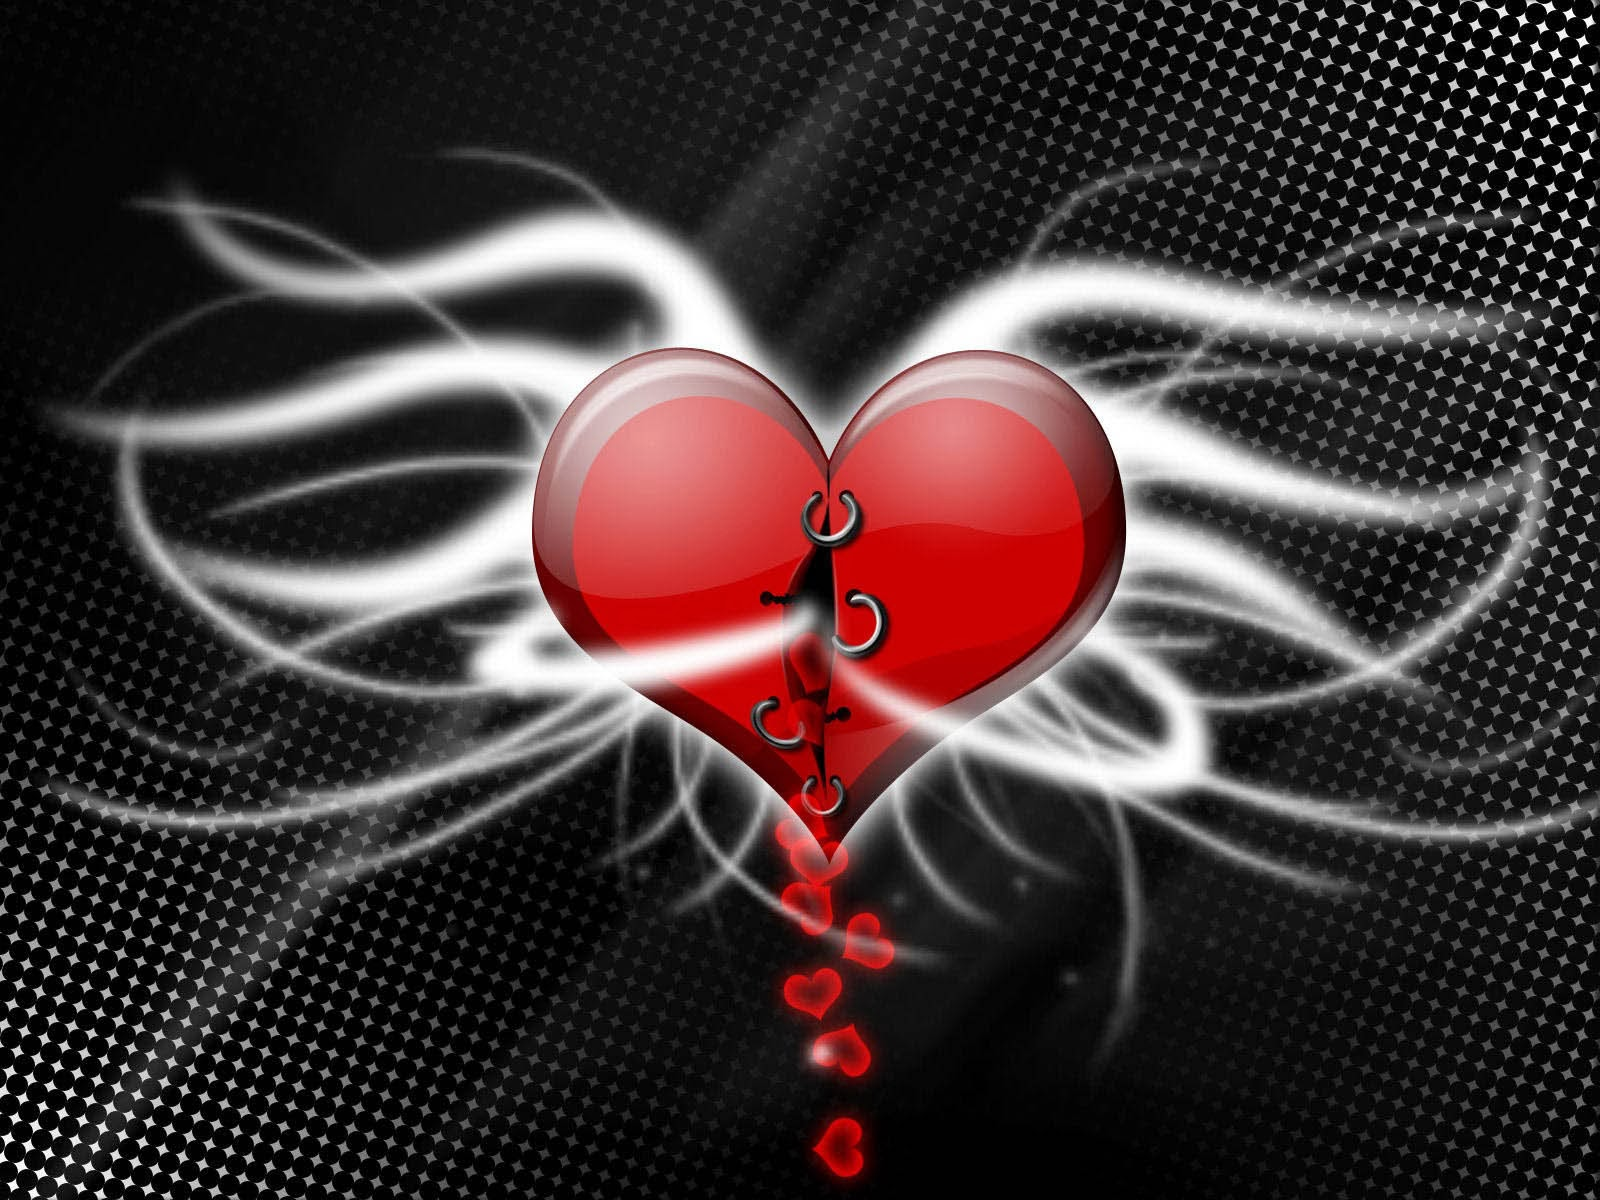 Missing Beats of Life: Love Heart HD Wallpapers and Images